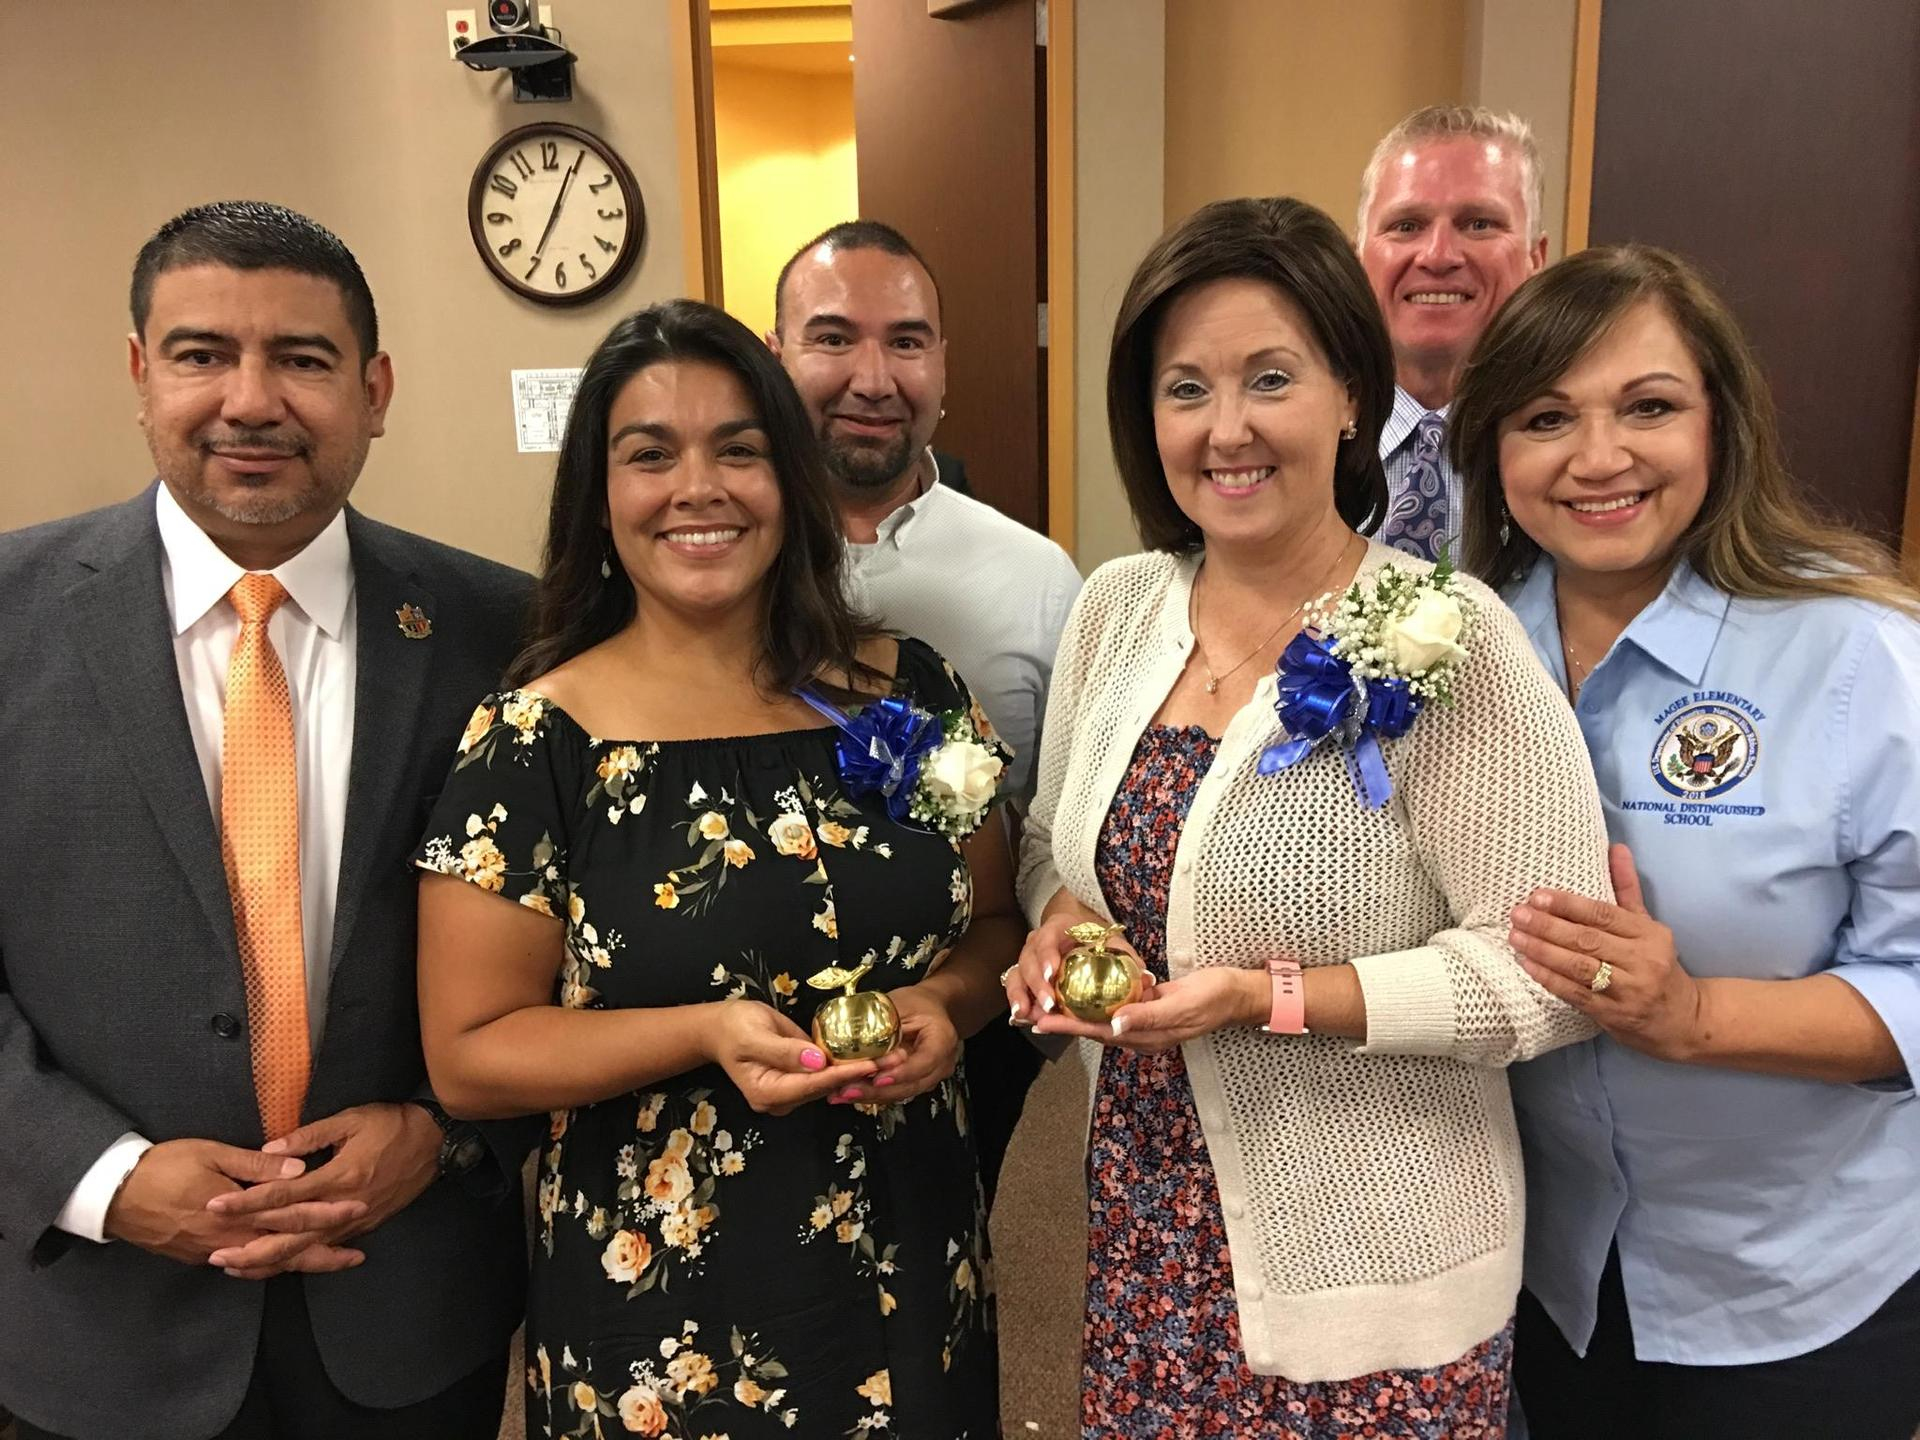 District Teachers of the Year attend the Regional Teacher of the Year Banquet